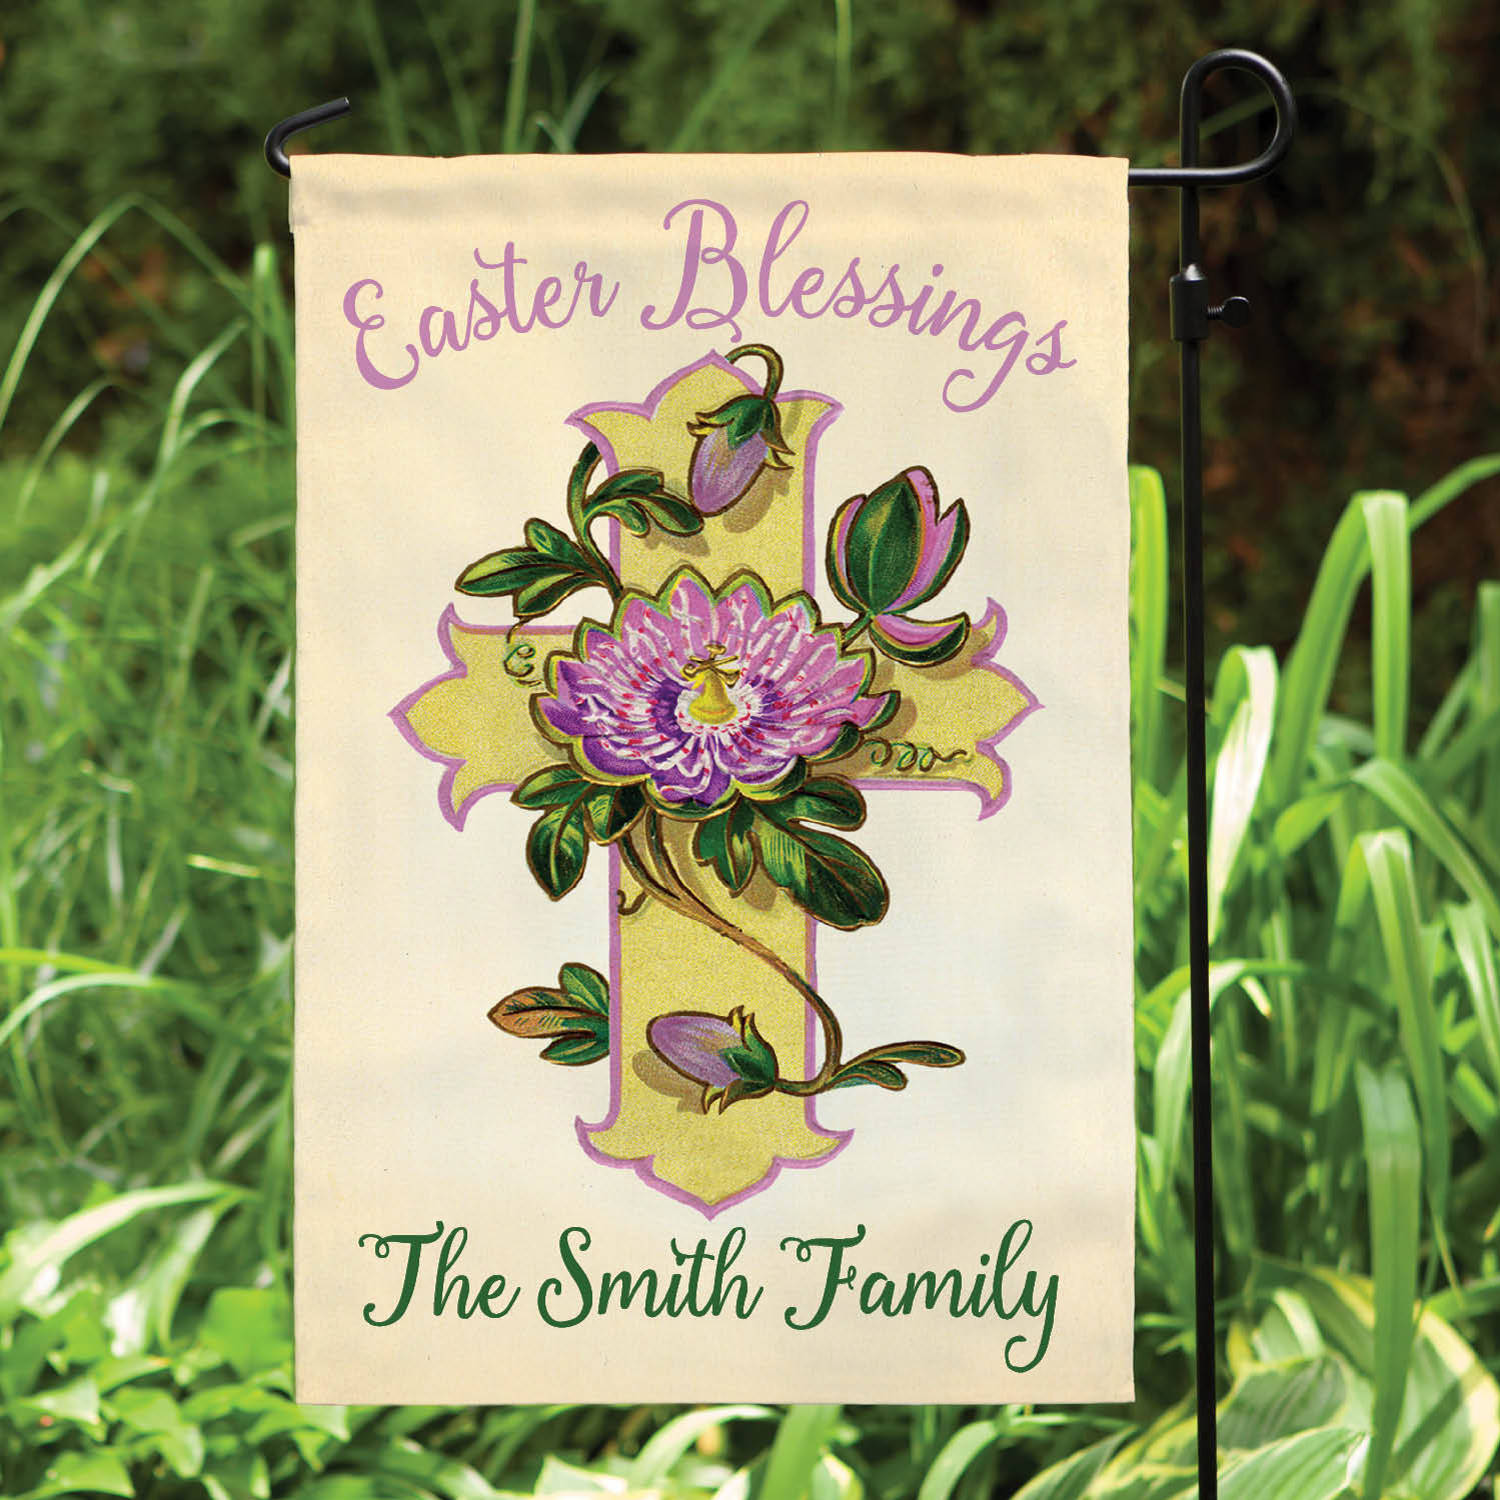 Personalized Easter Blessings Garden Flag